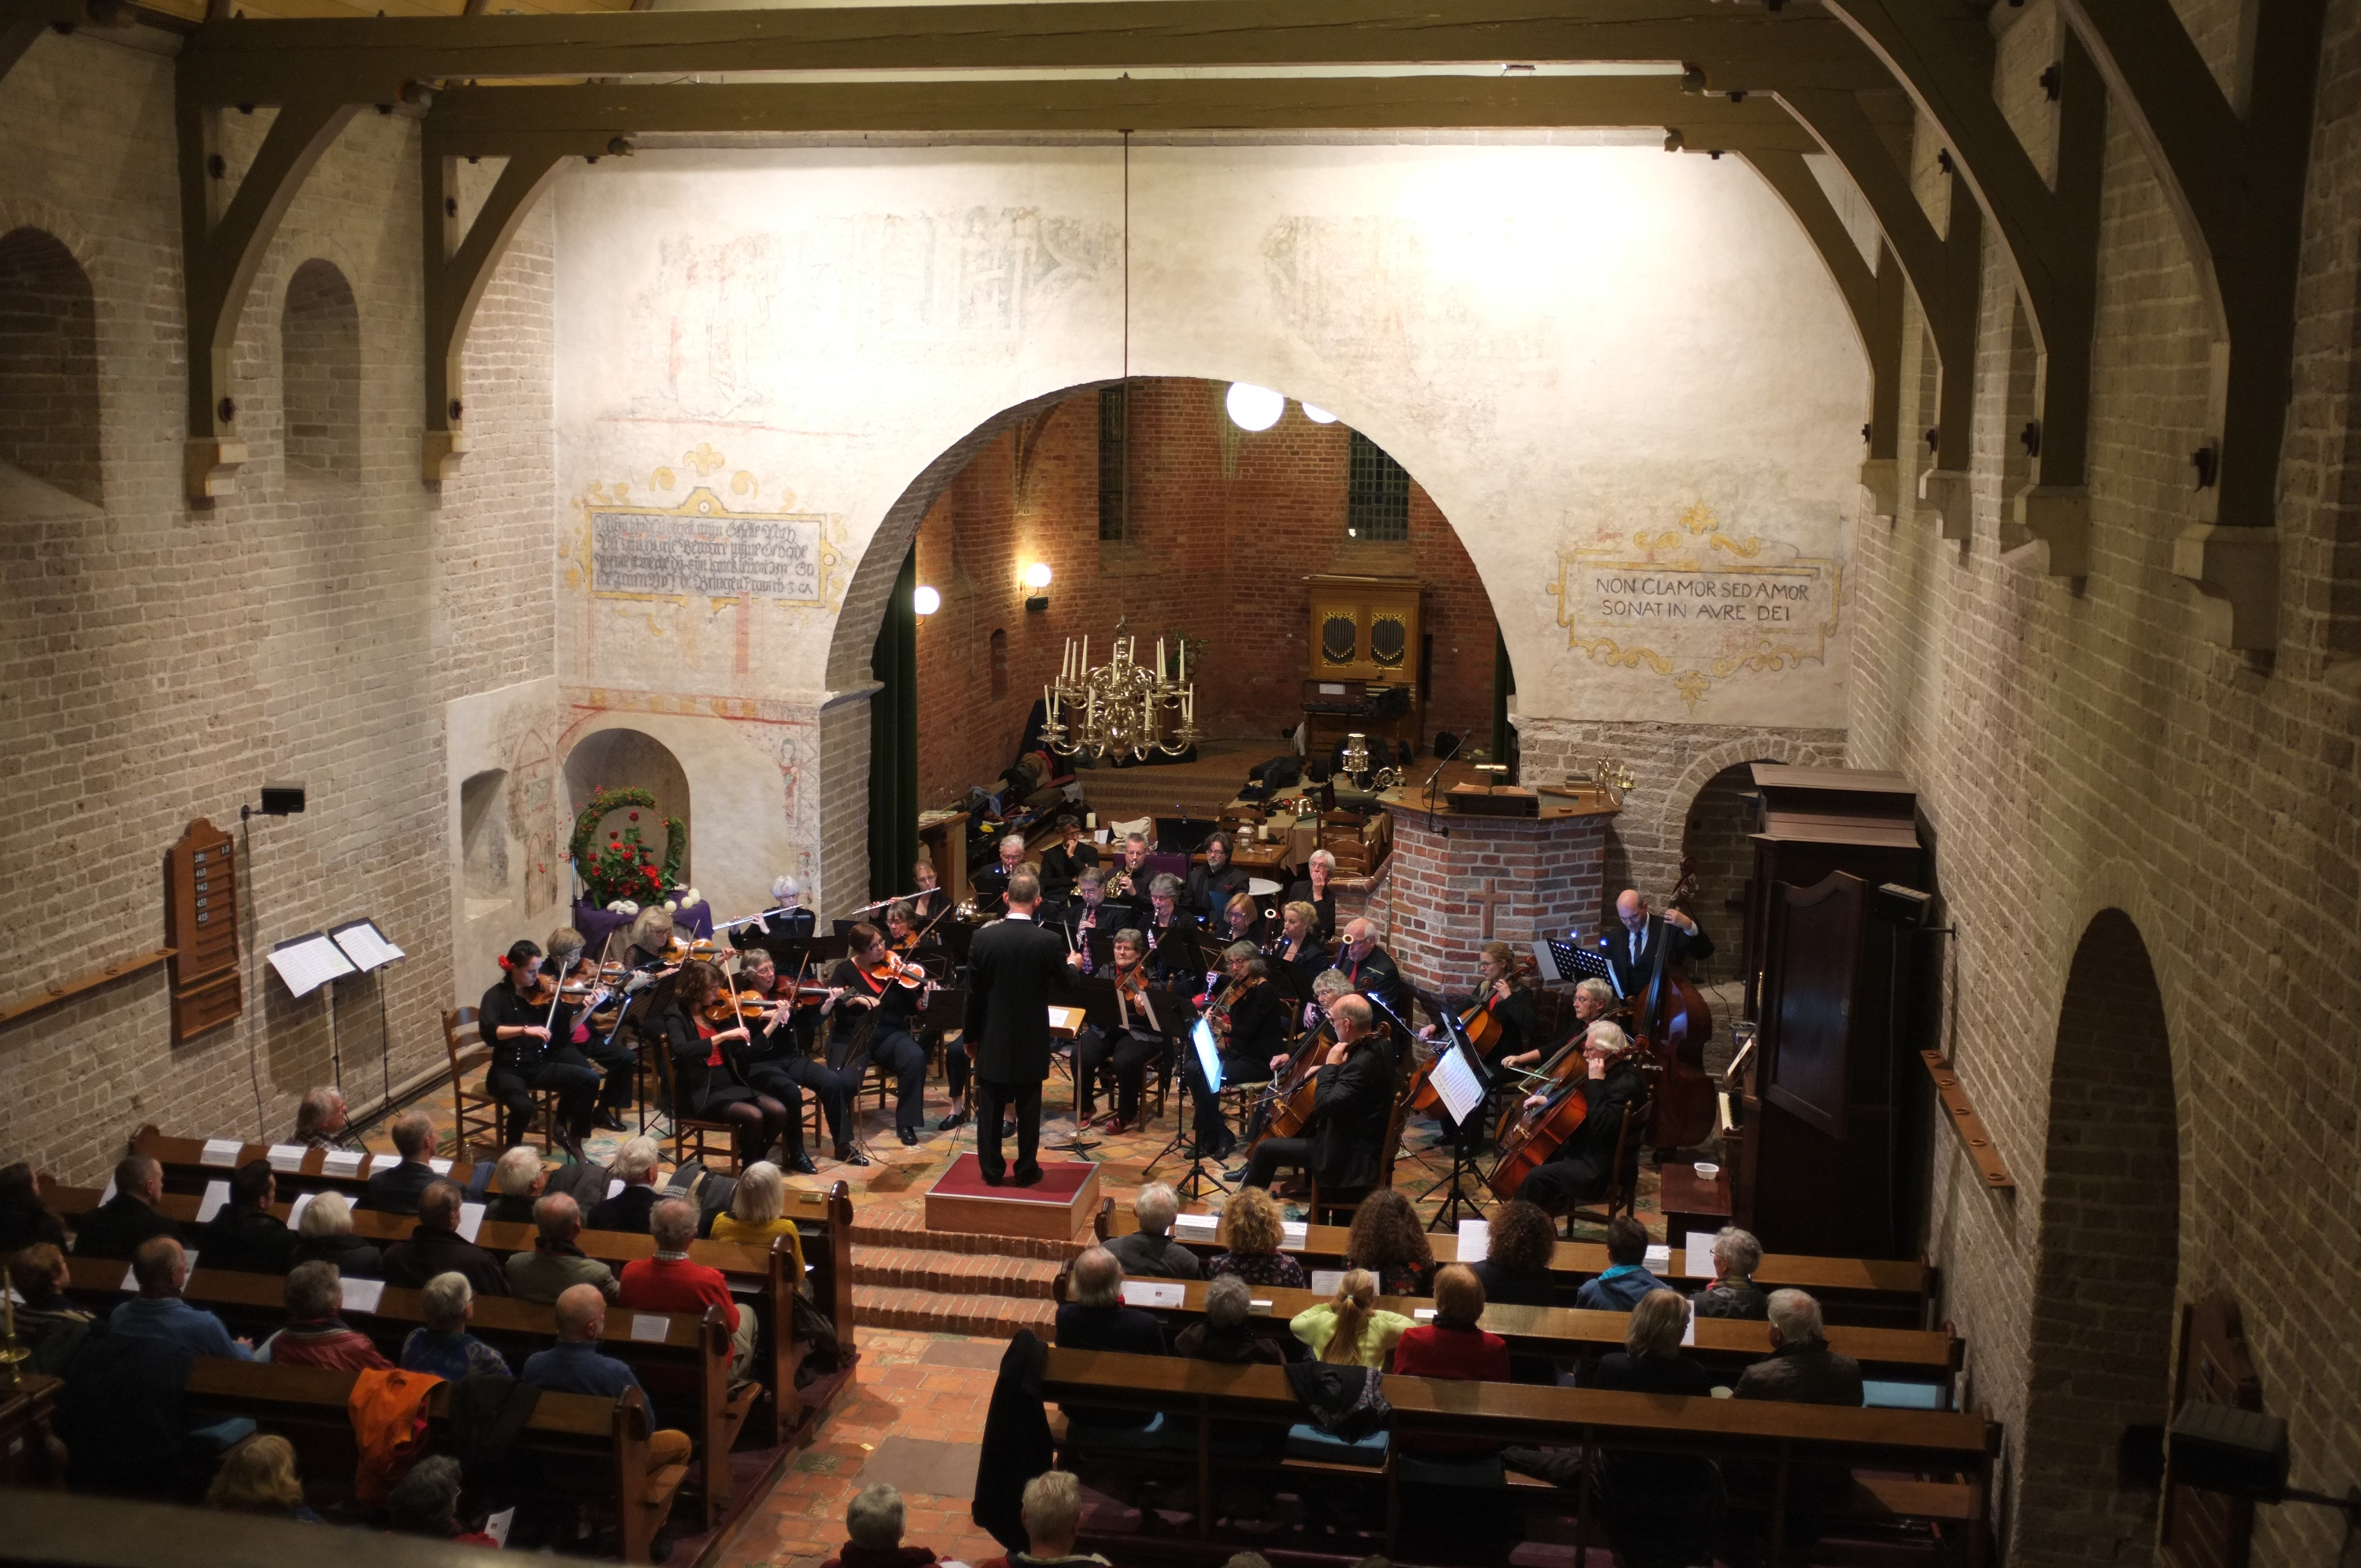 Najaarsconcert Divertimento in Anloo